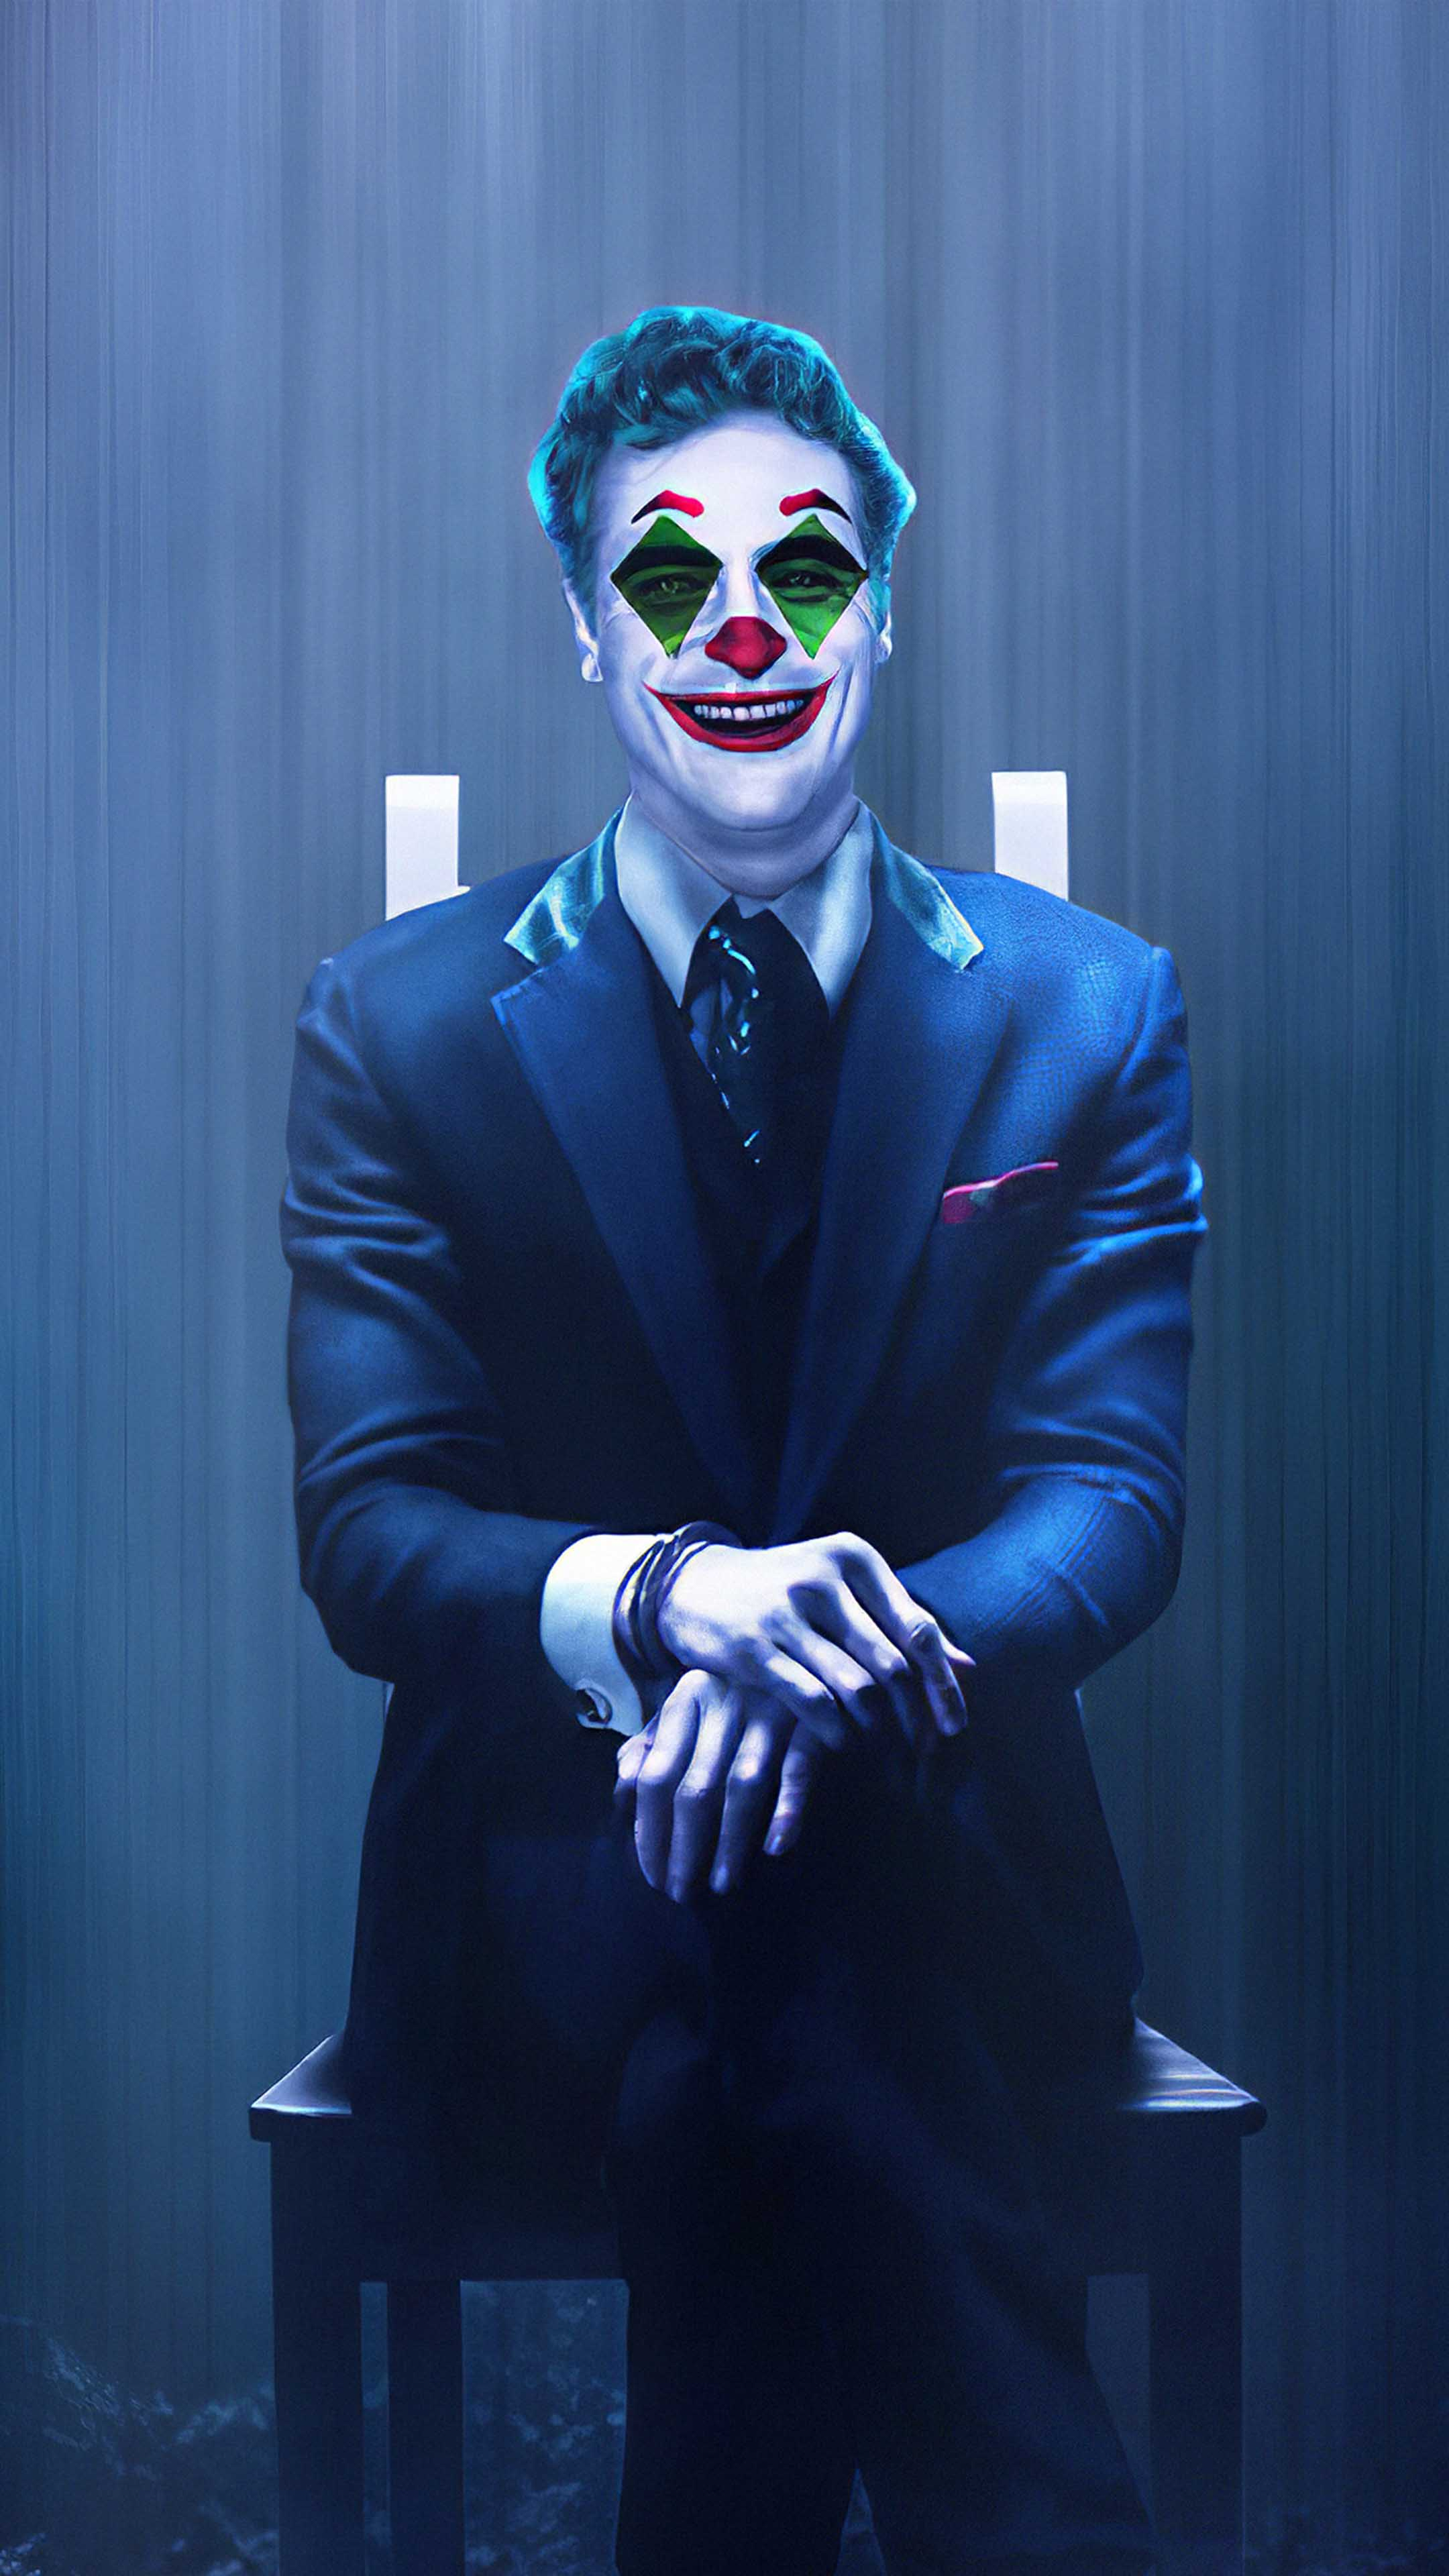 Joker Wallpaper Hd Download For Android Mobile 3130306 Hd Wallpaper Backgrounds Download